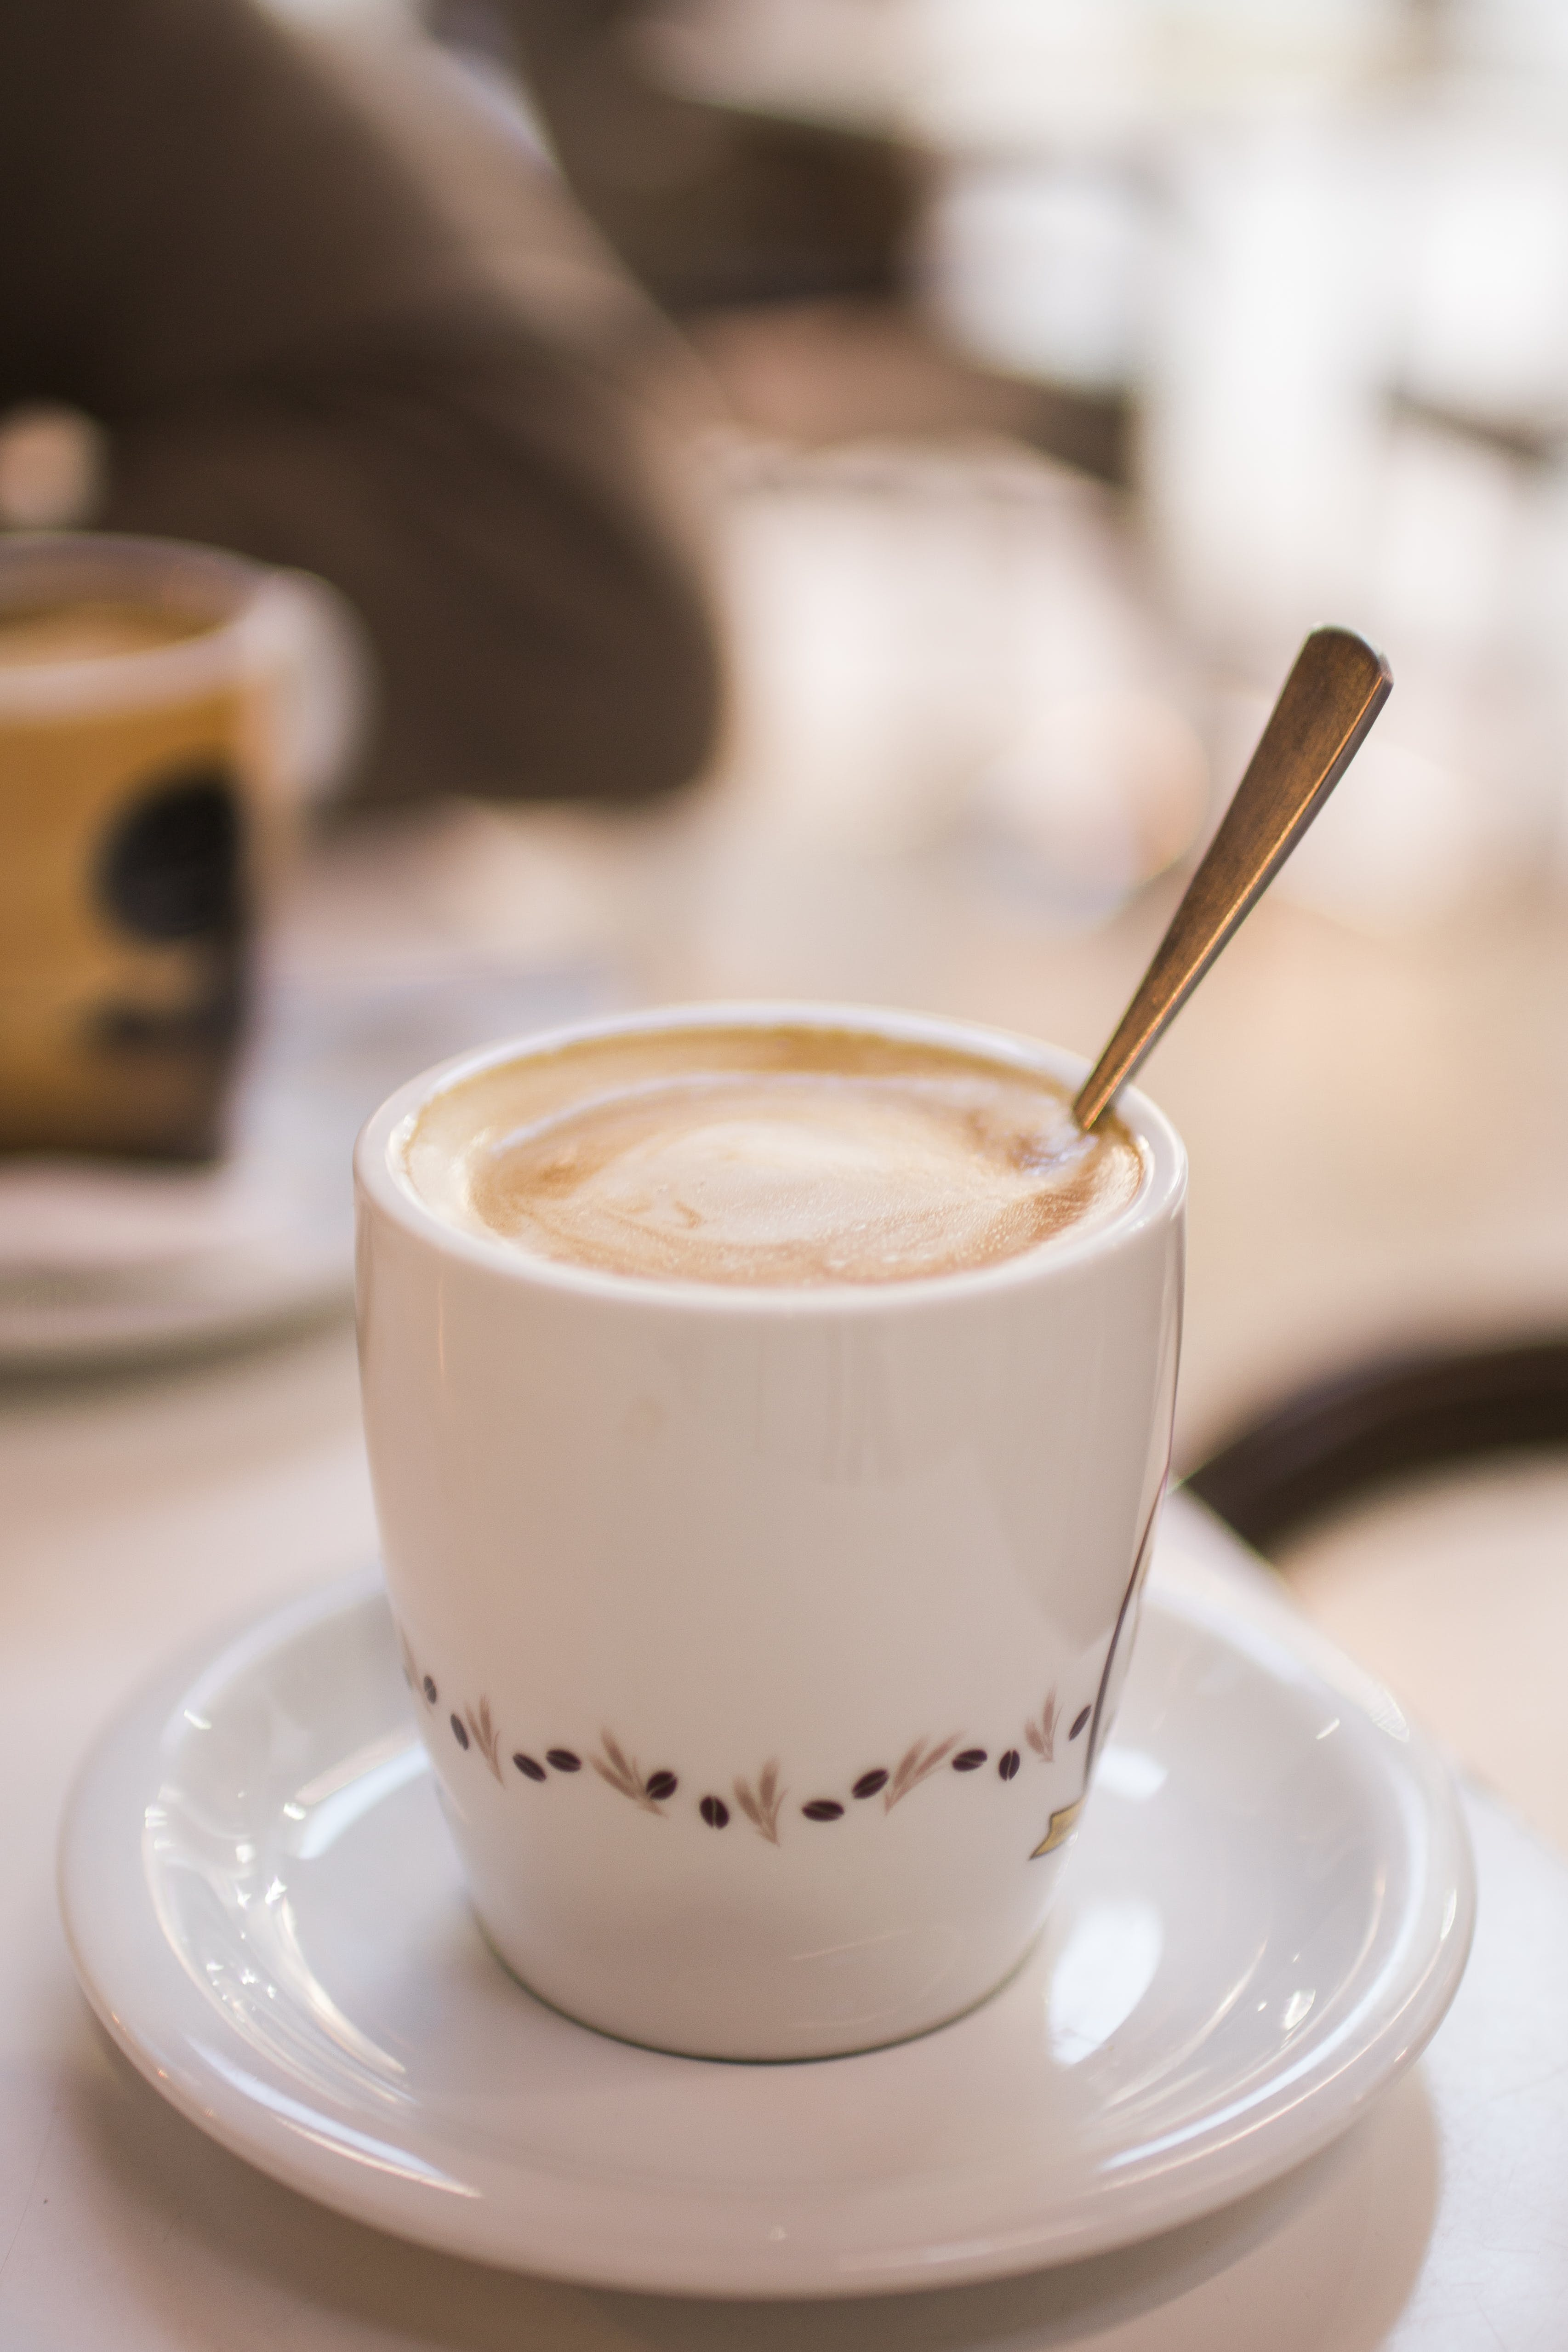 White and Brown Ceramic Cup Filled With Latte on White Ceramic Saucer